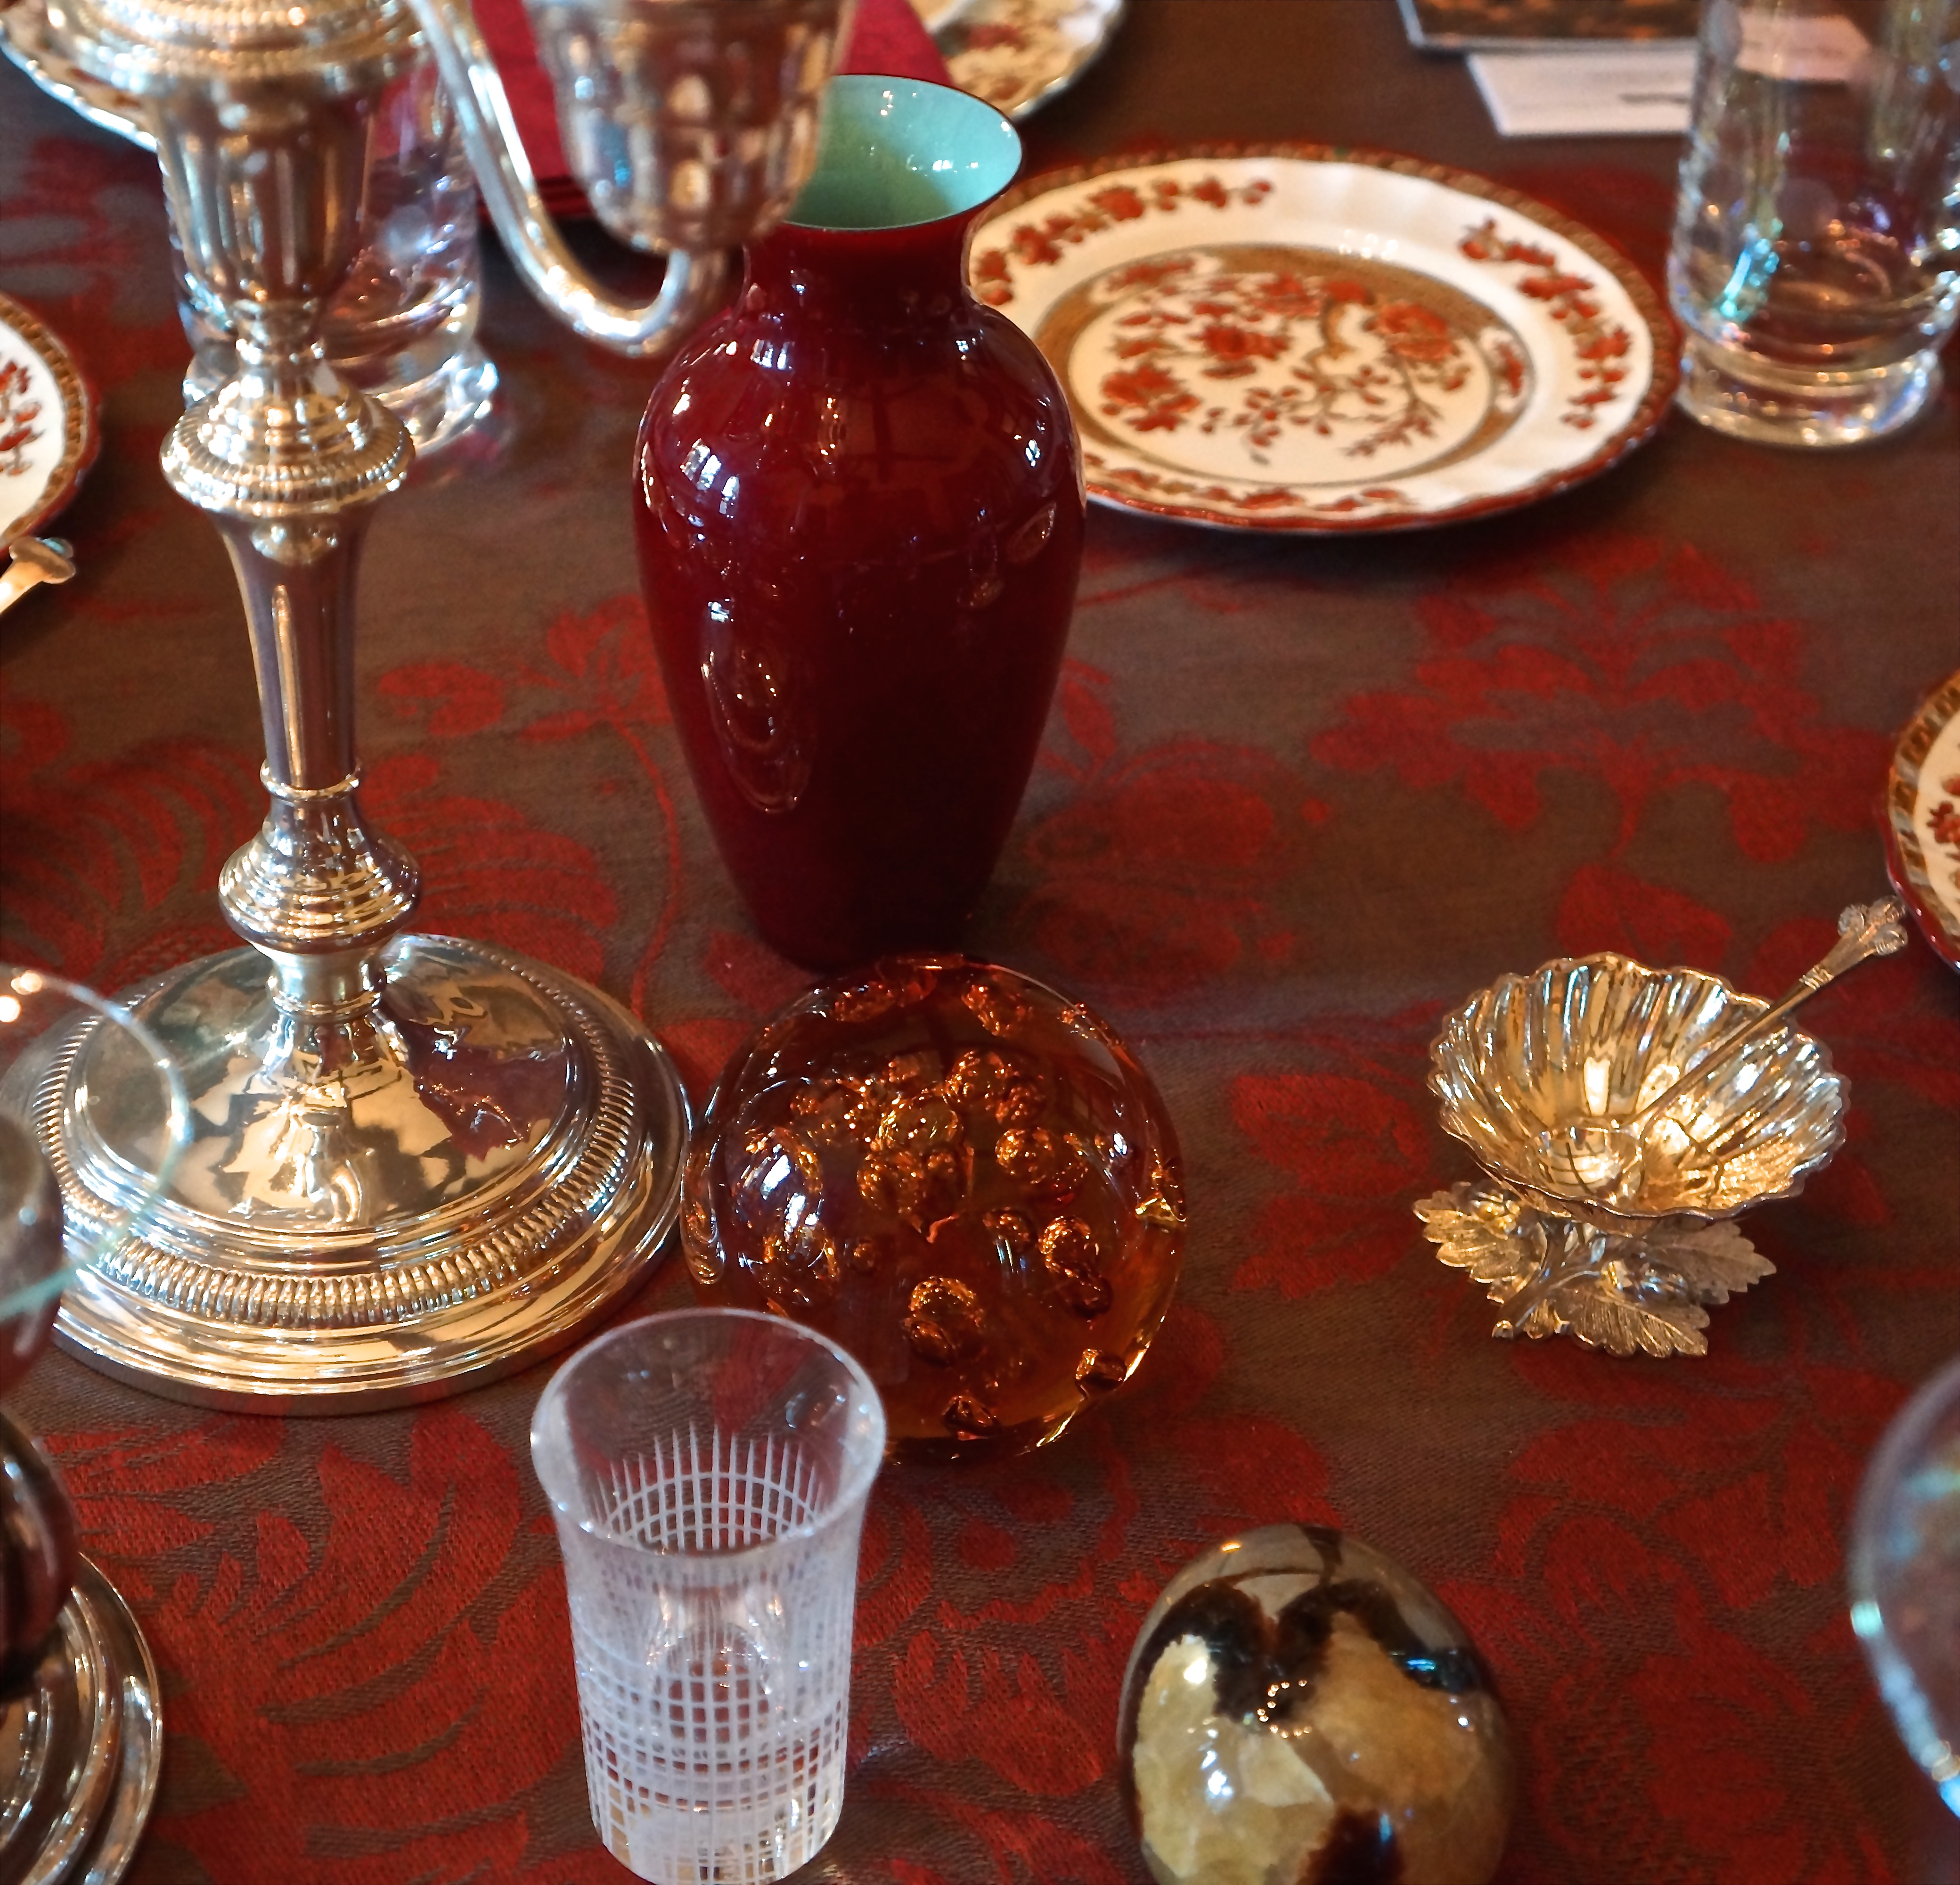 I included whimsical things from my collection: A blue Lalique butterfly, an amethyst geode, a blood red Chinese vase and porcelain cherub bowls to hold the cranberries were all part of the mix.